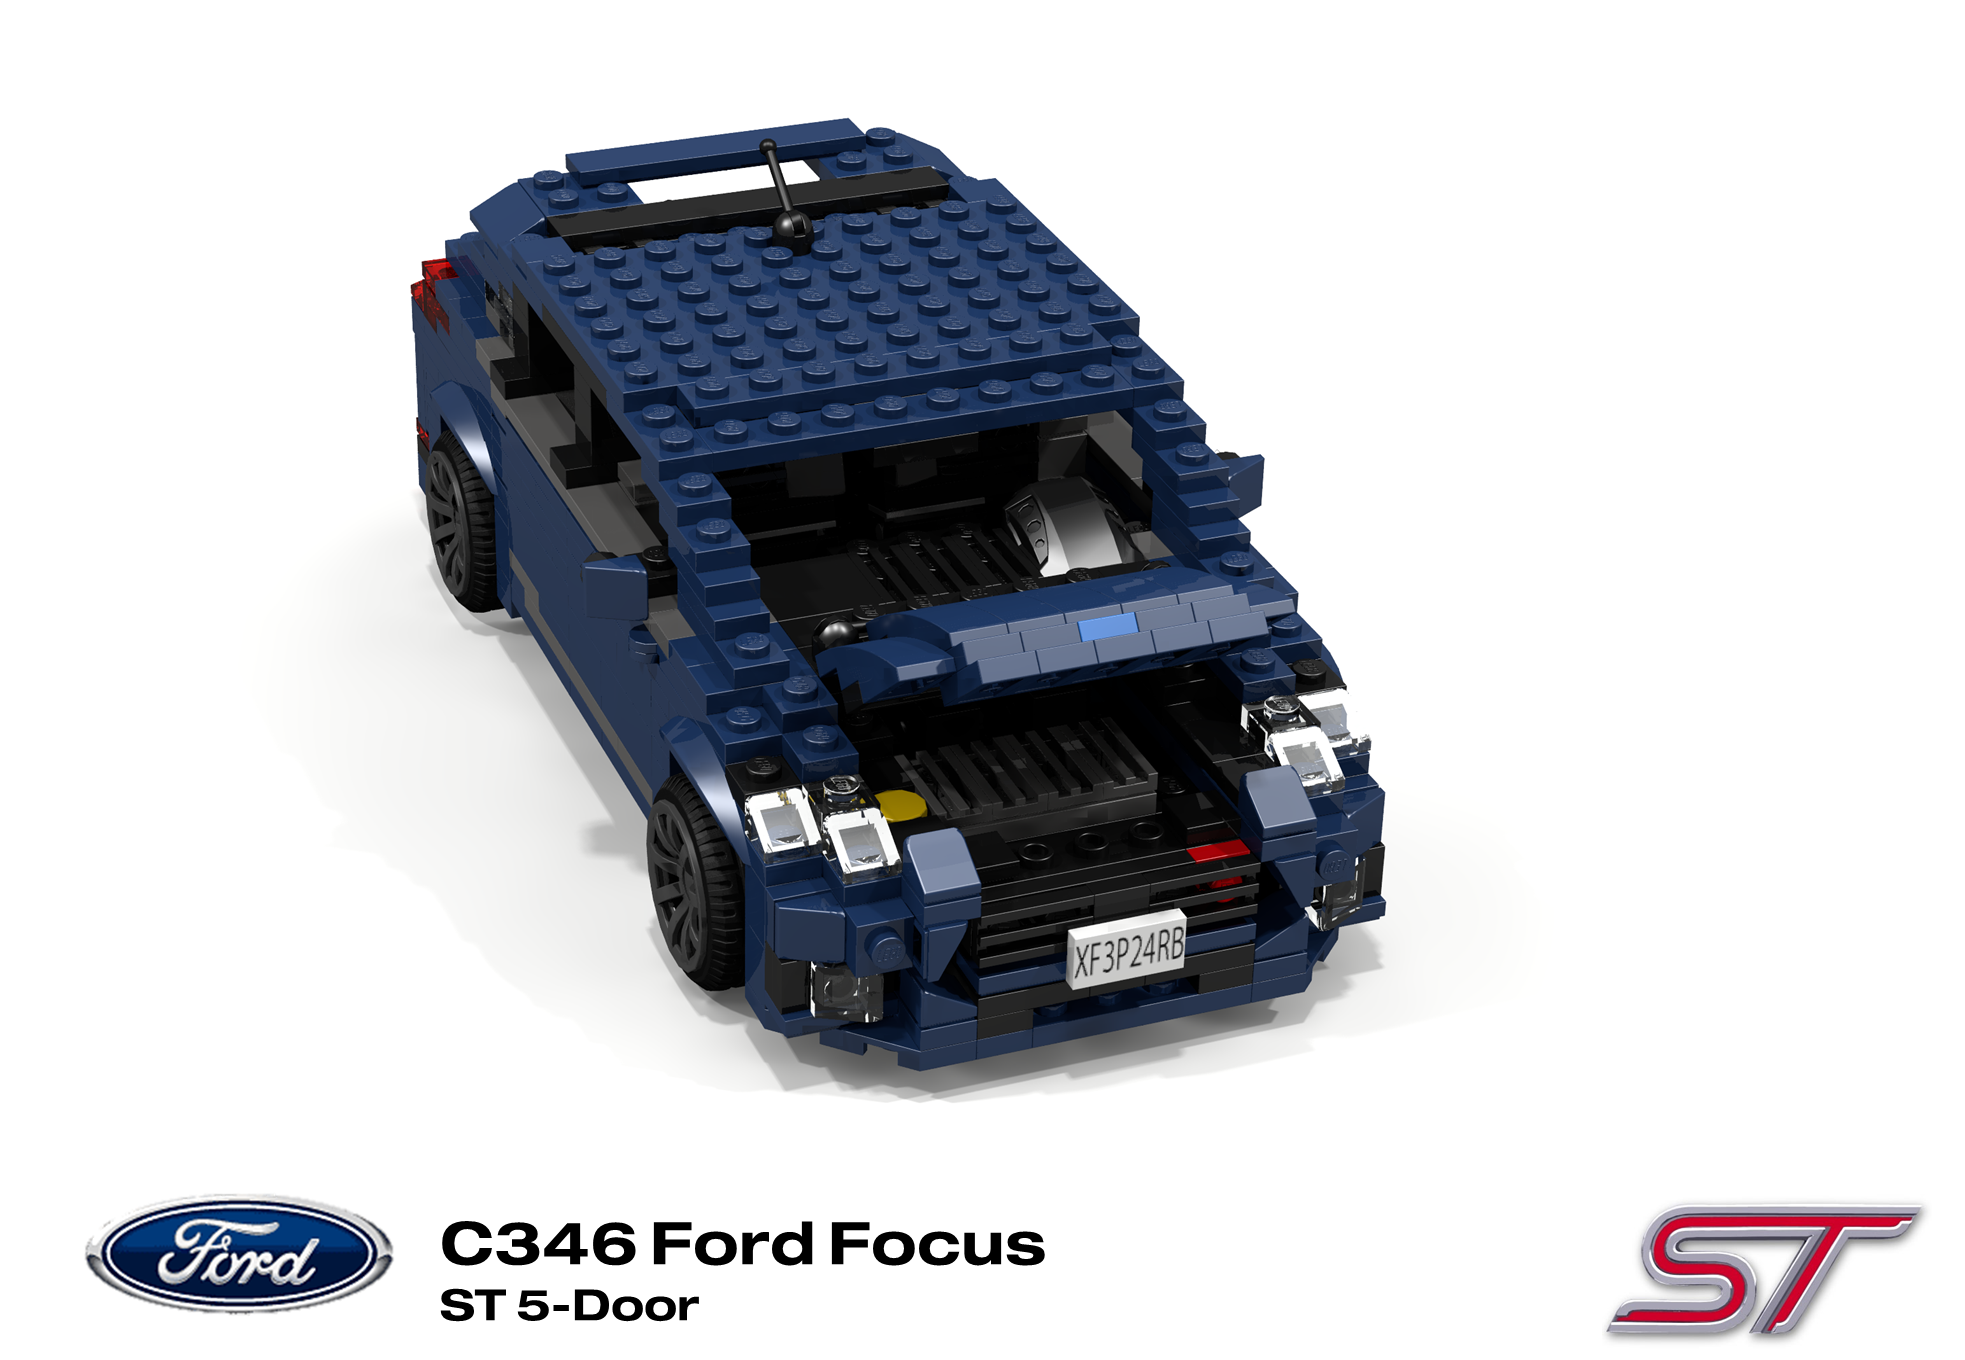 ford_focus_c346mca_st_hatch_04.png